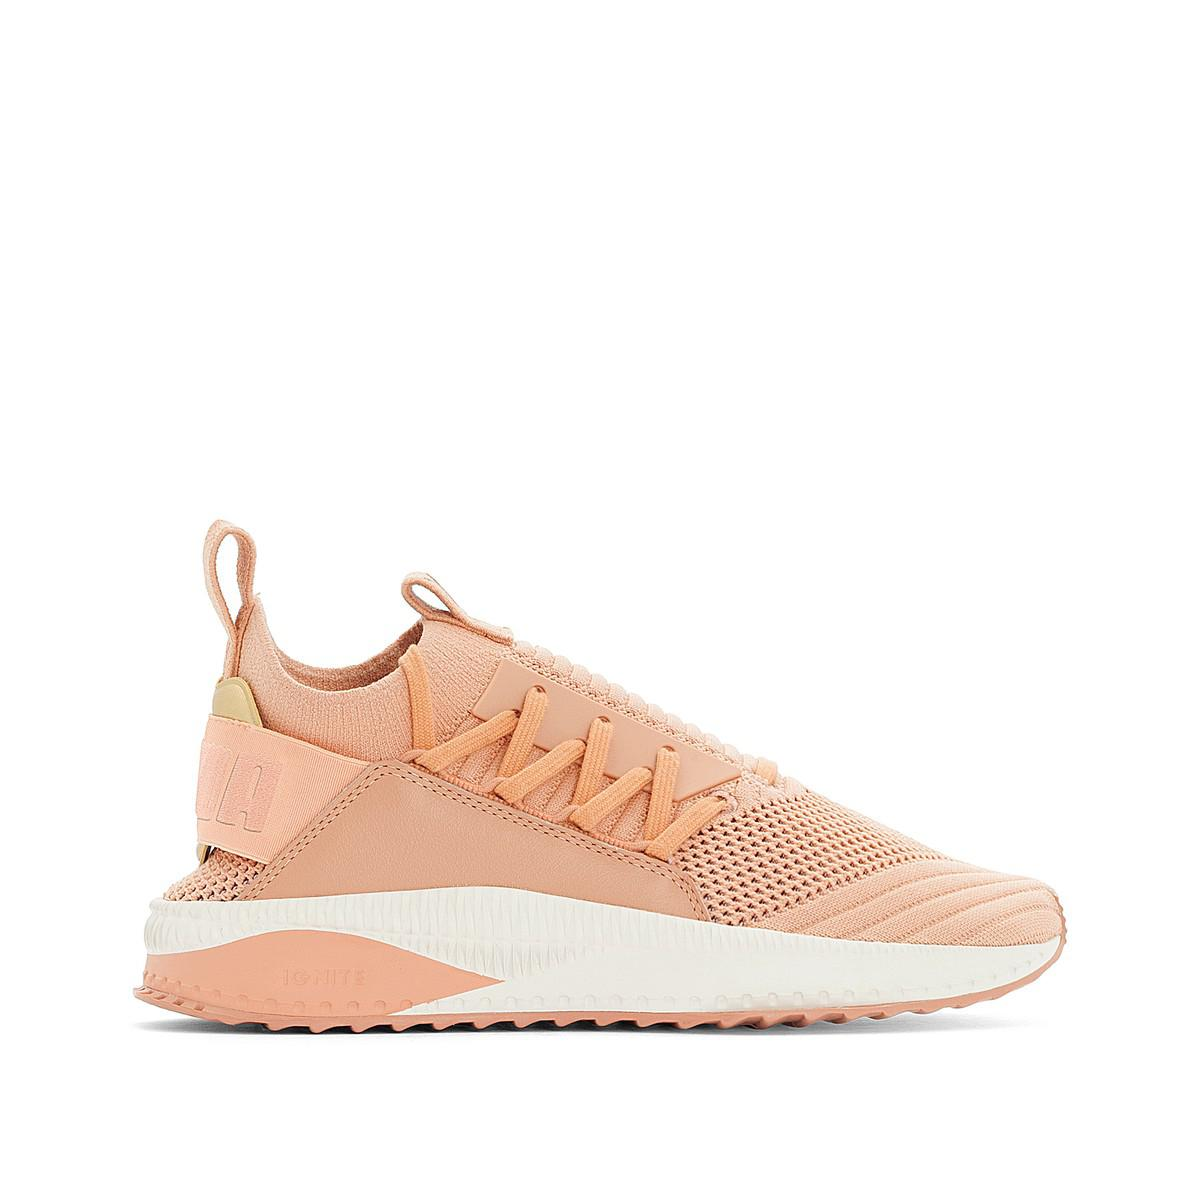 PUMA WN Tsugi Jun Color Shift Trainers discount great deals for cheap sale online excellent cheap price cheap classic Ig3ssT